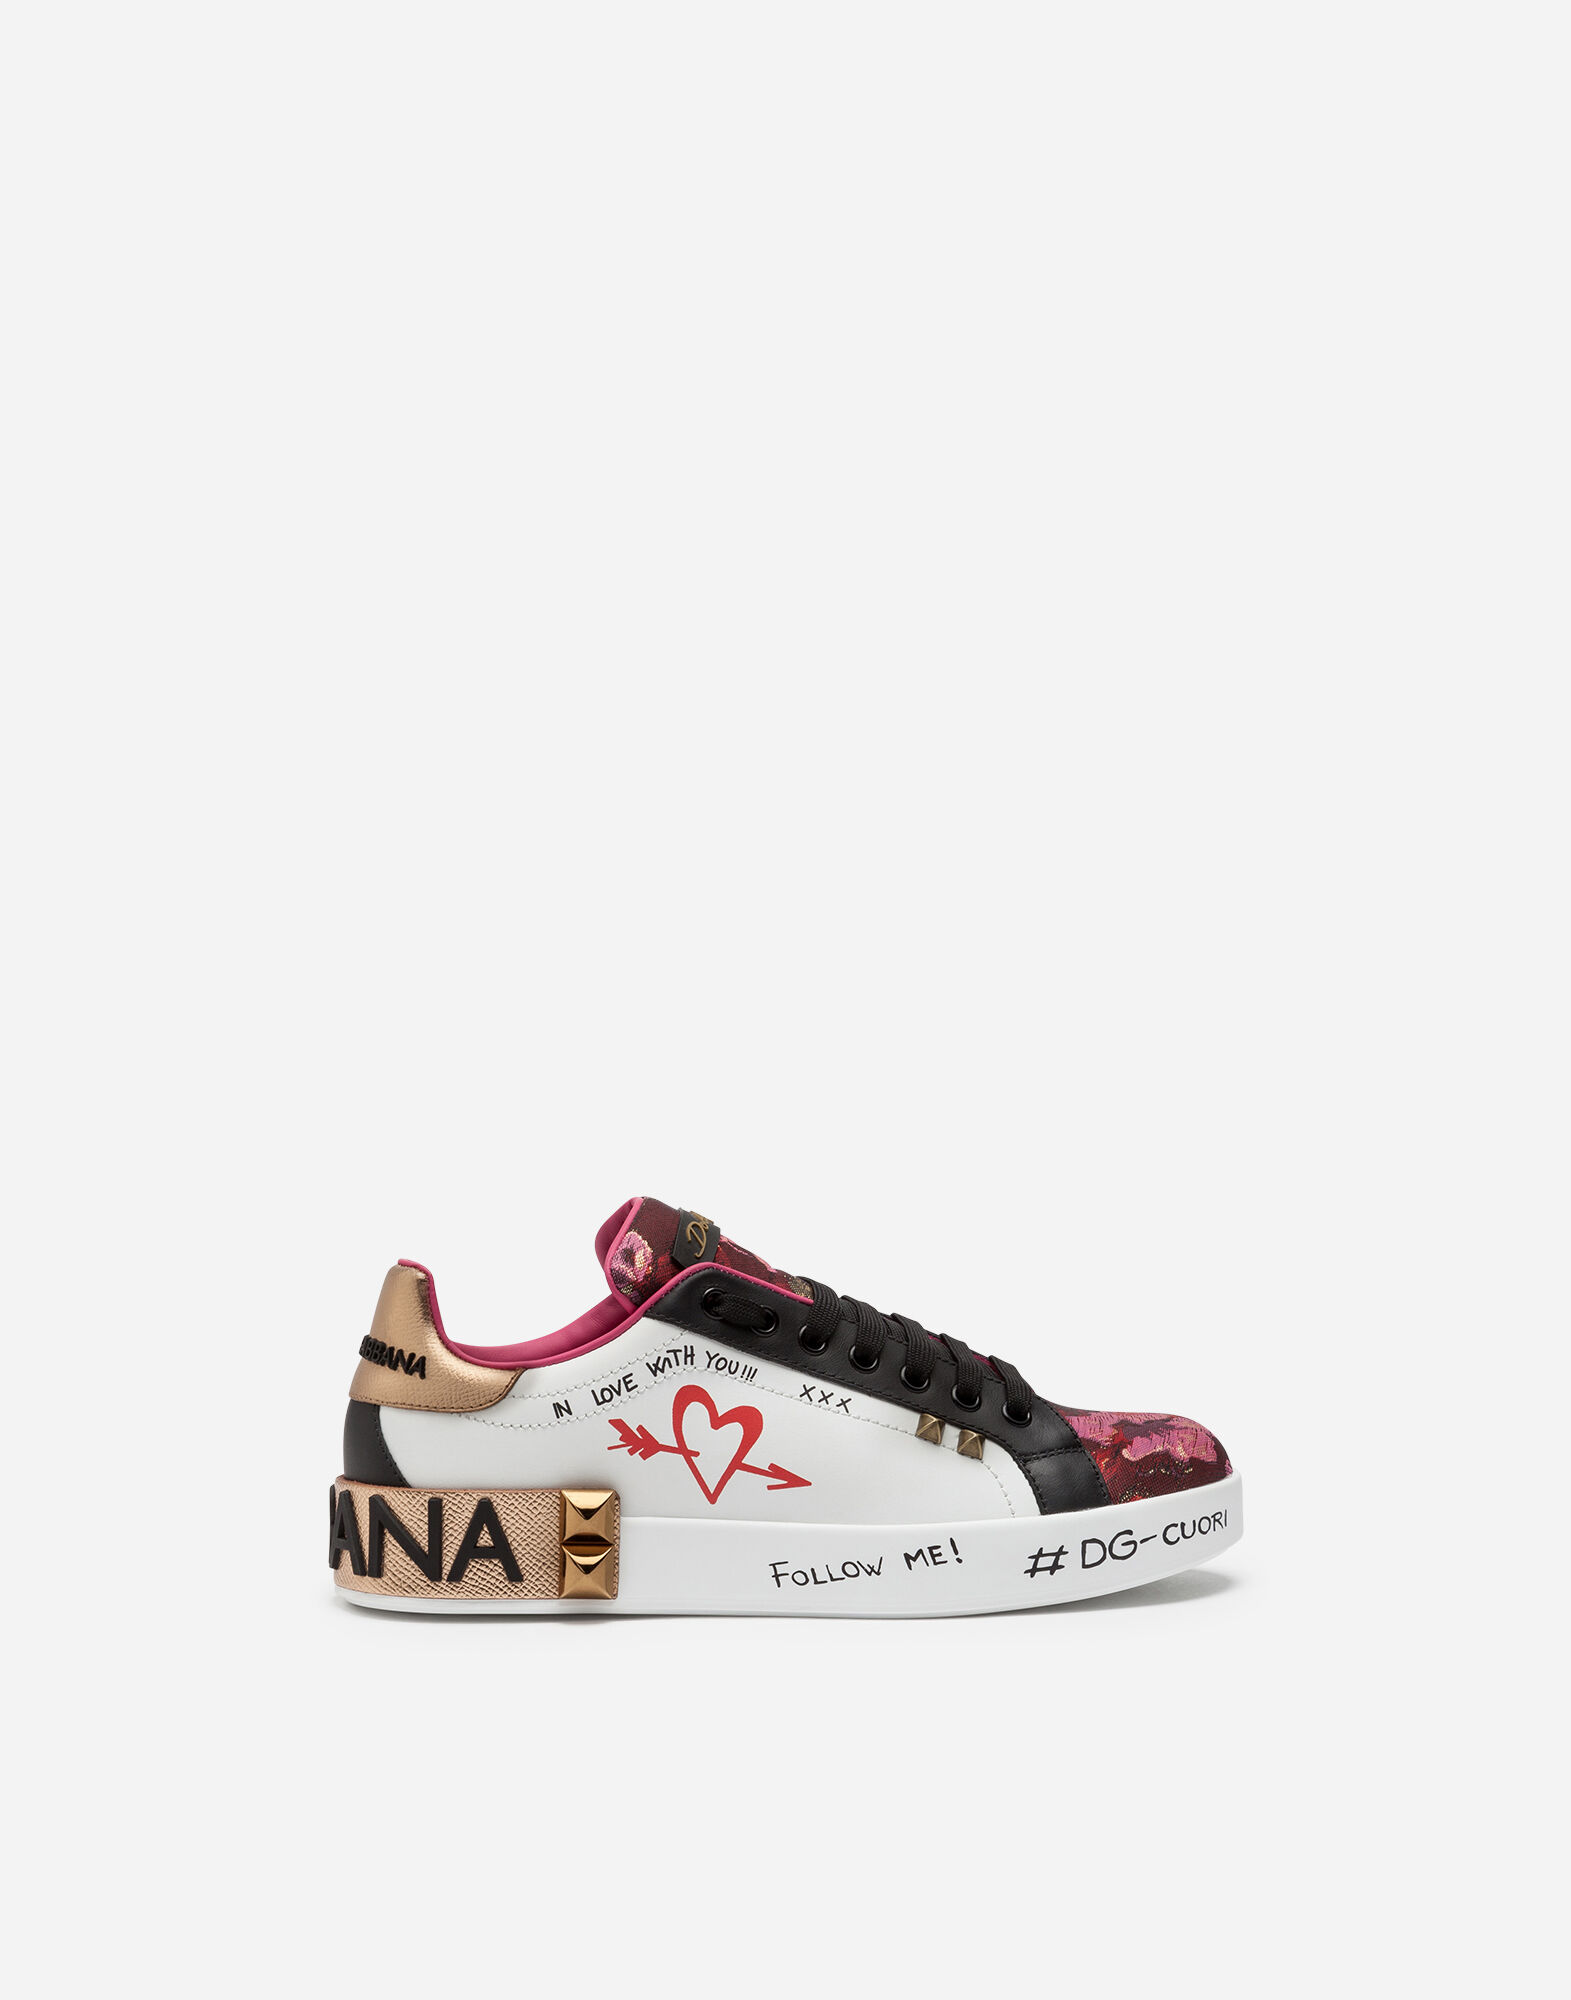 Dolce Dolce Femme amp;gabbana Sneakers Pour Dolce Sneakers Pour Pour Femme amp;gabbana Sneakers Femme Pour Sneakers amp;gabbana 645gwfxg